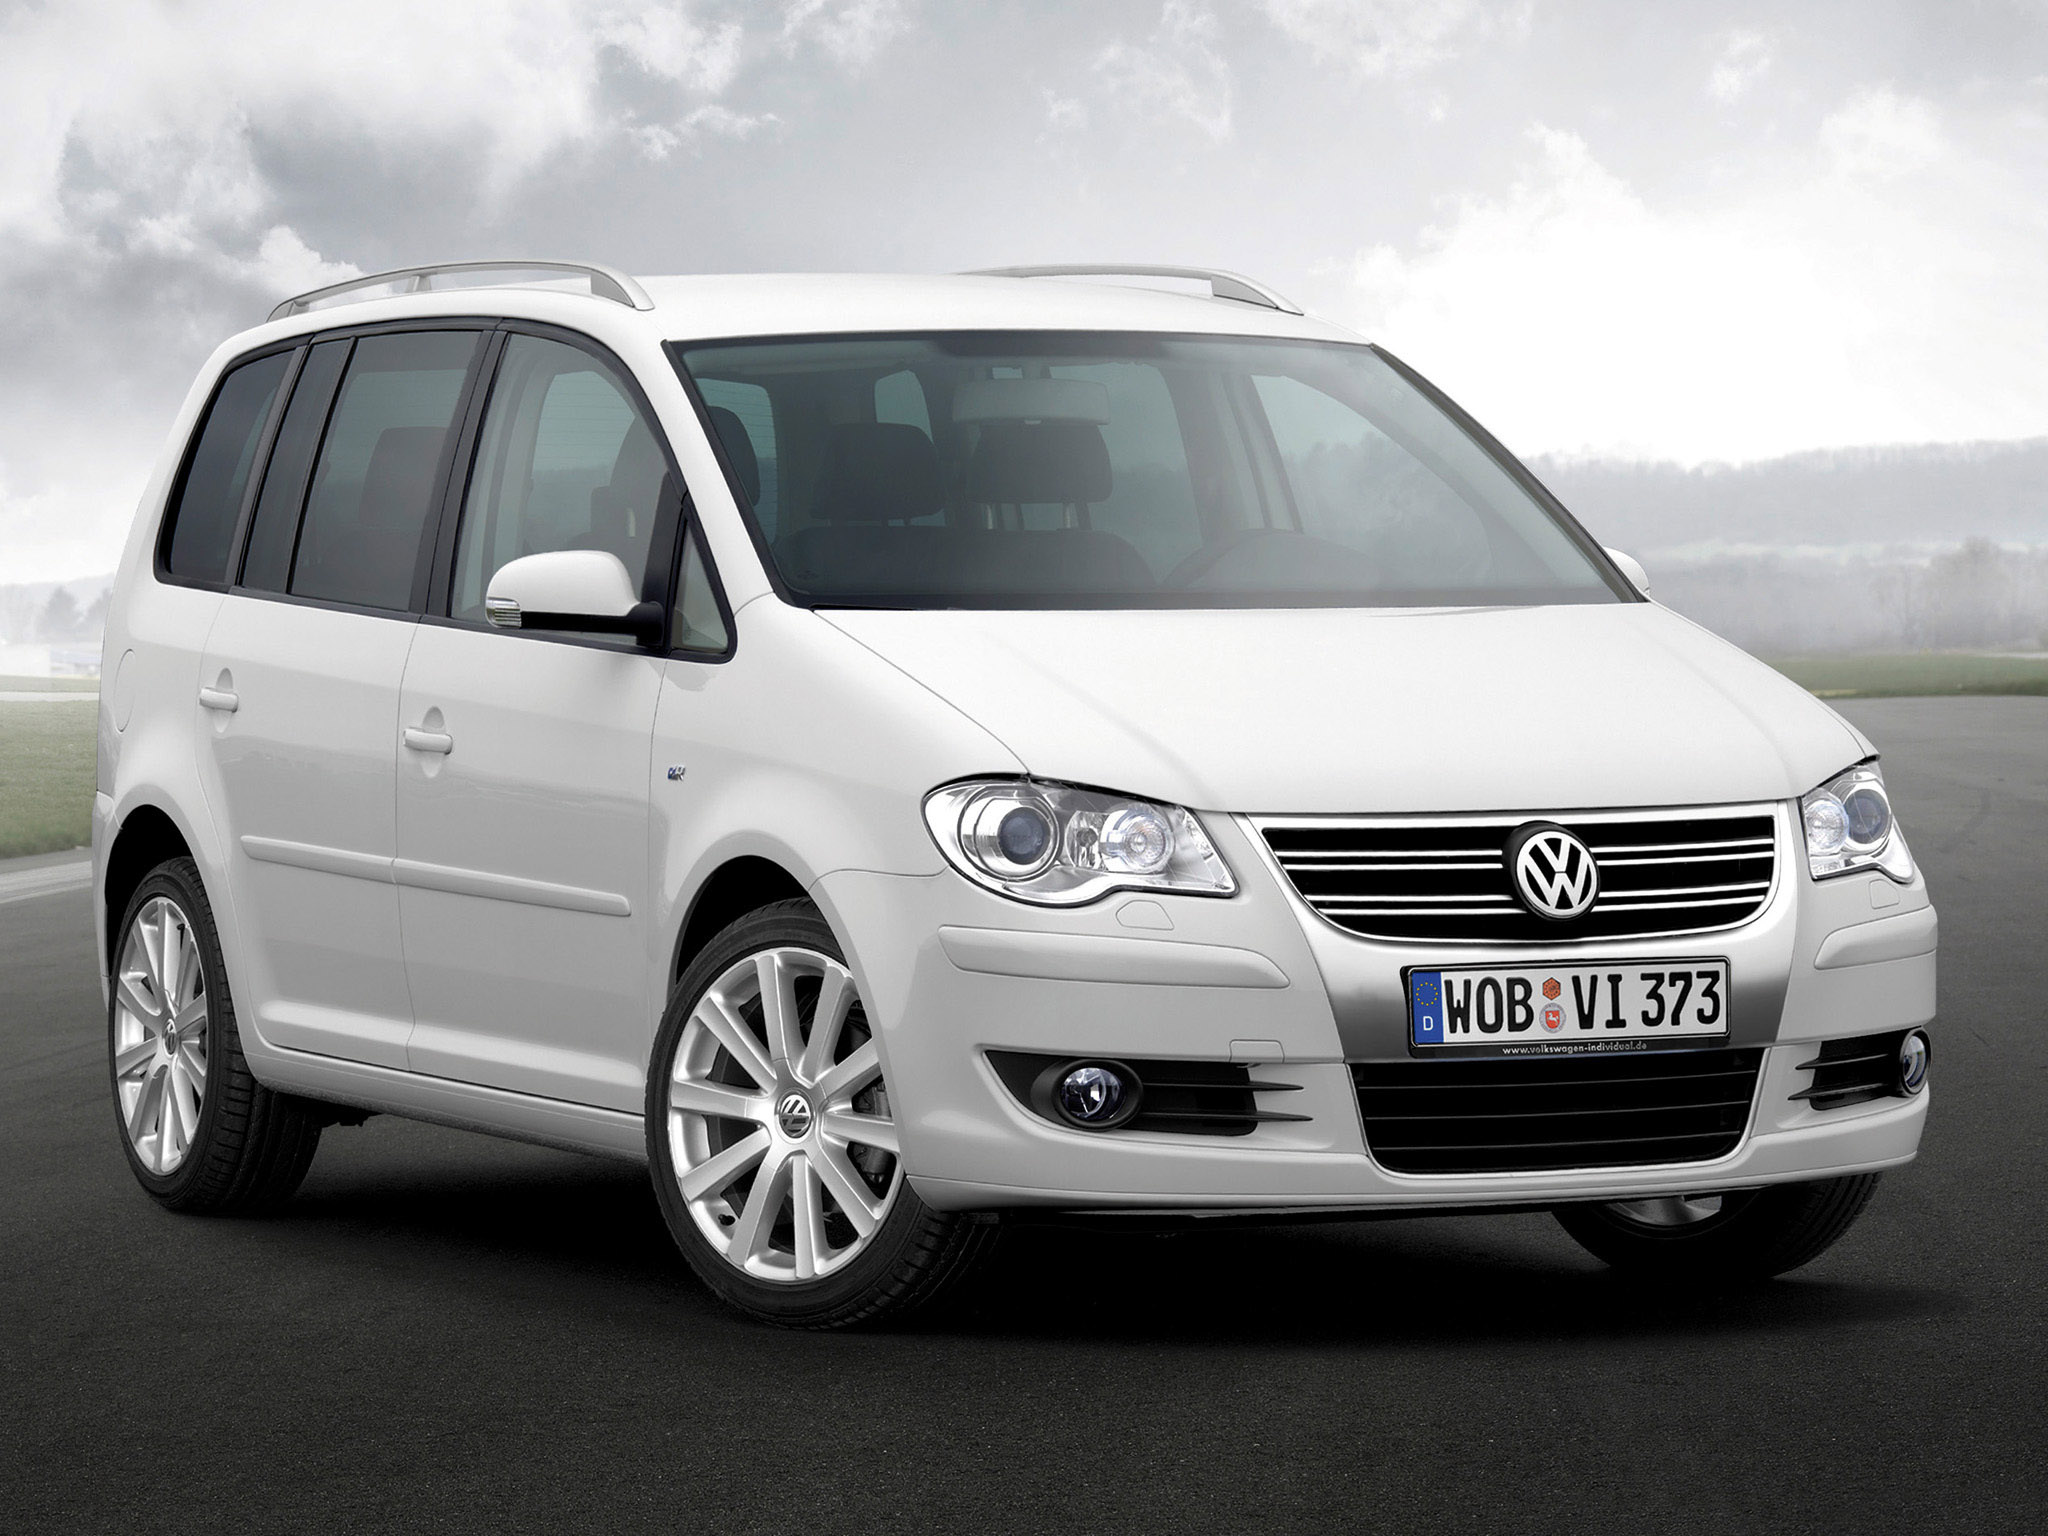 volkswagen touran r line 2007 volkswagen touran r line 2007 photo 02 car in pictures car. Black Bedroom Furniture Sets. Home Design Ideas